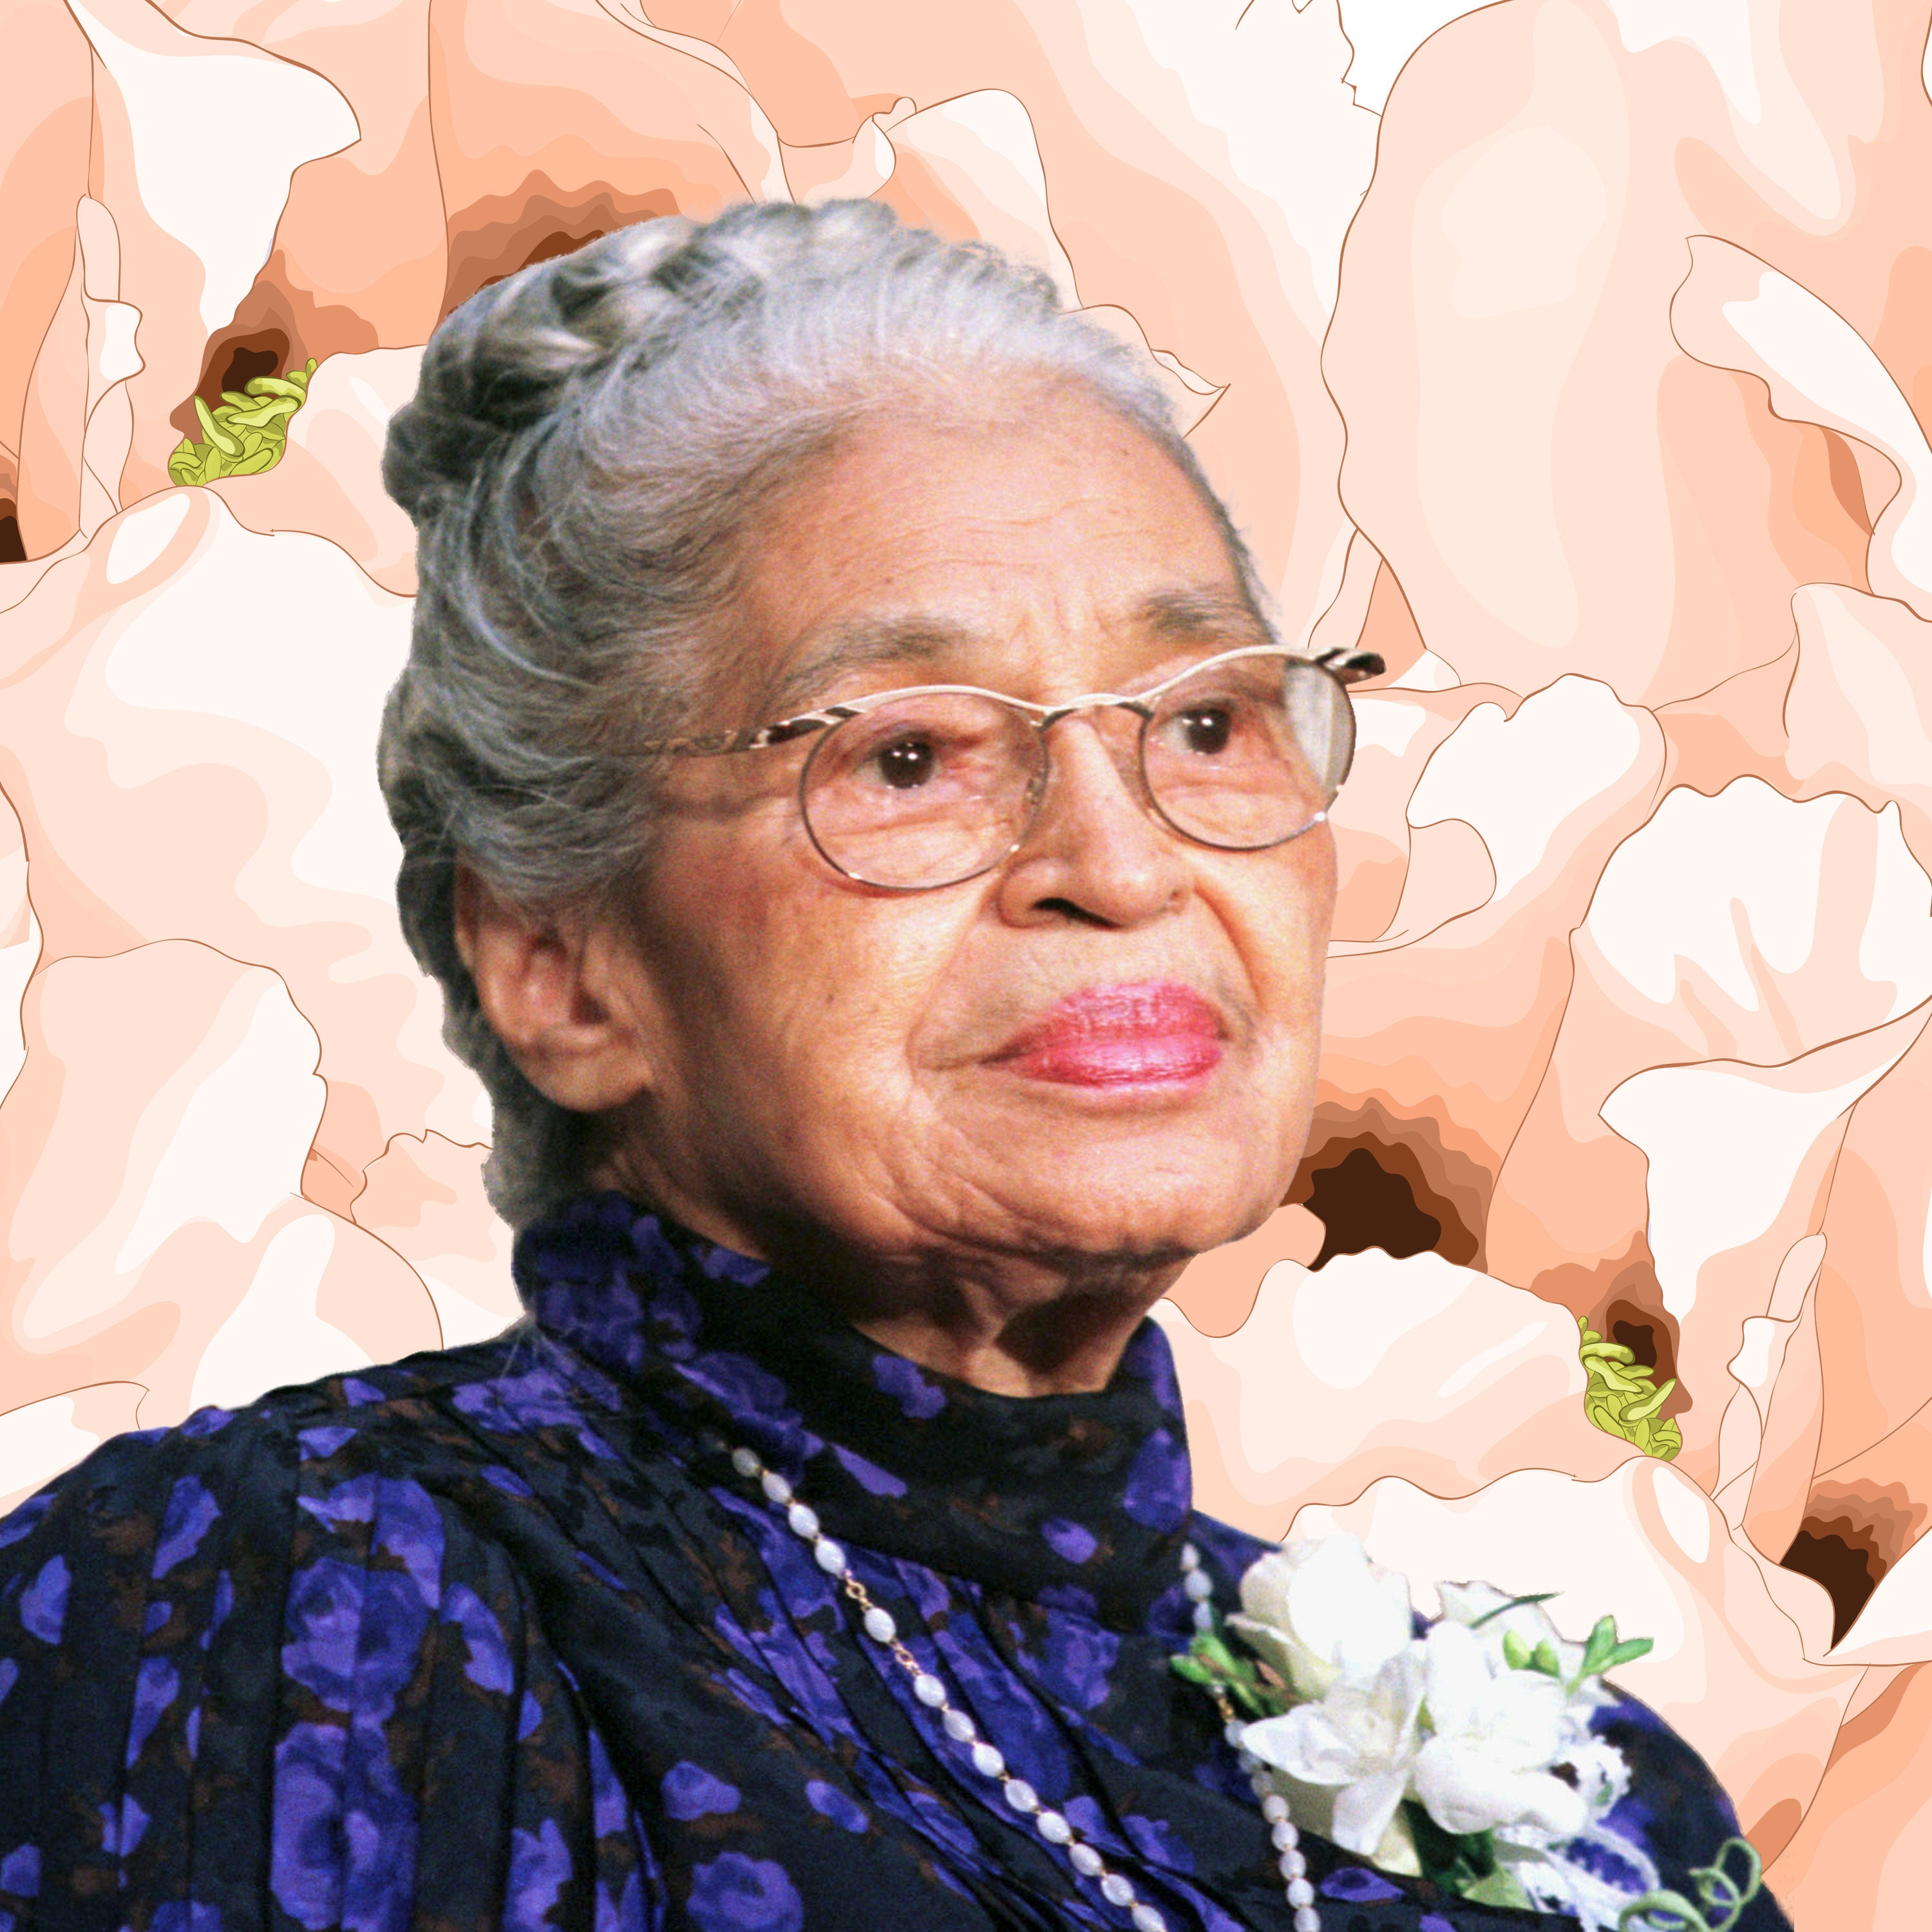 Rosa Parks Biopic To Start Production In 2019